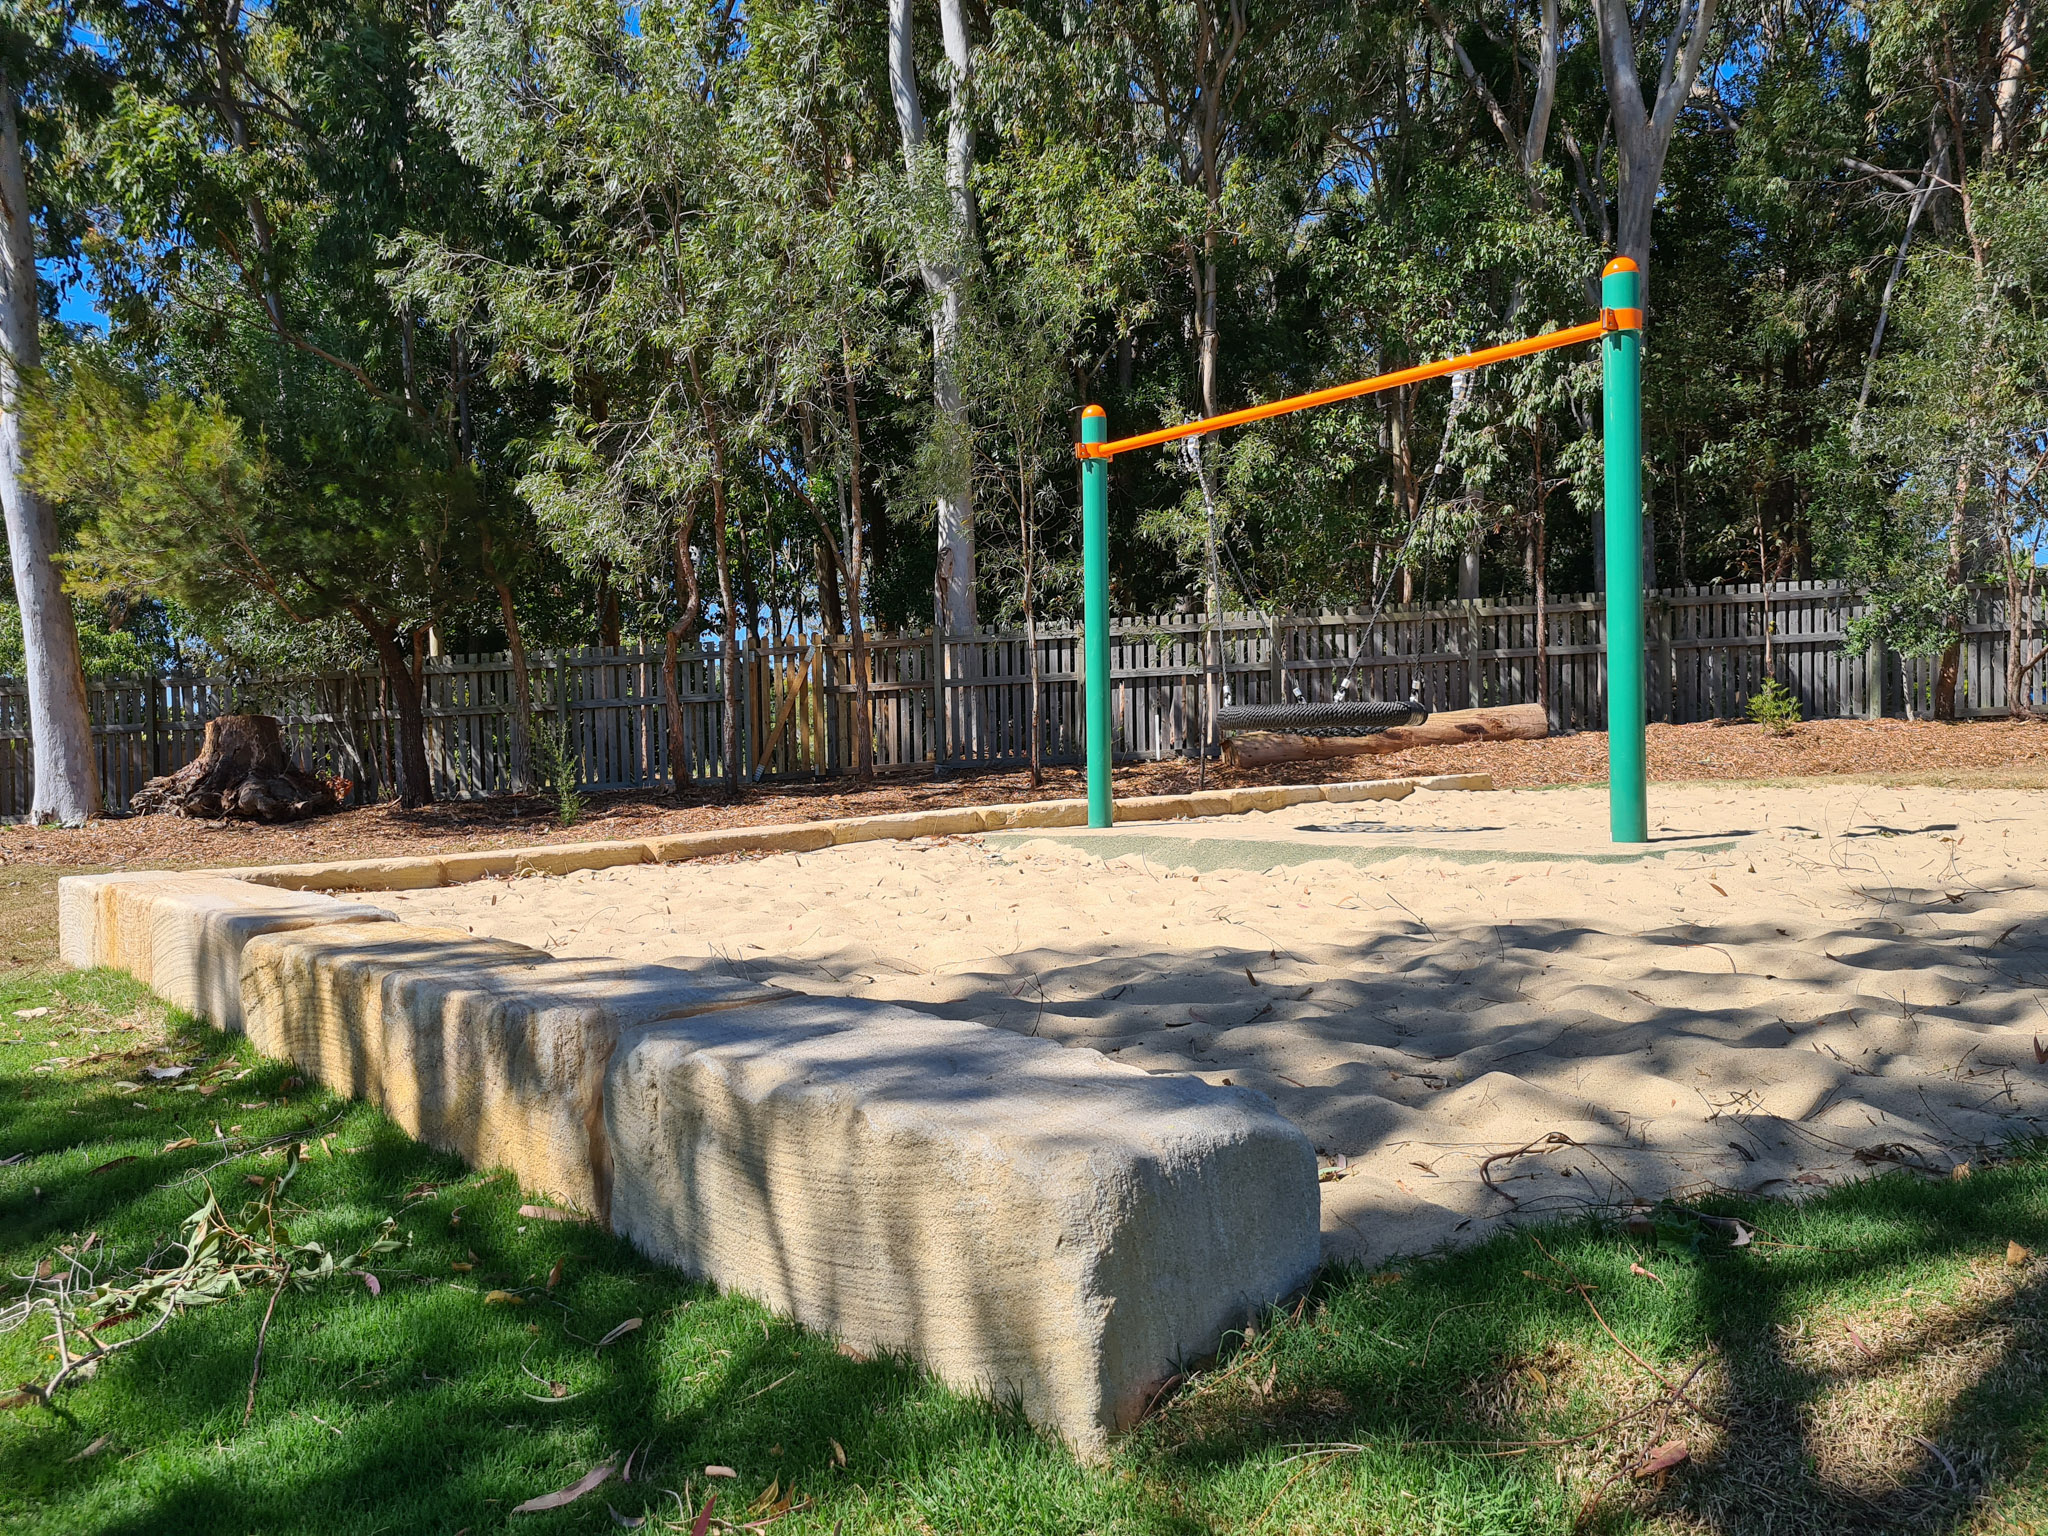 riley-peter-place-park-rope-play-11